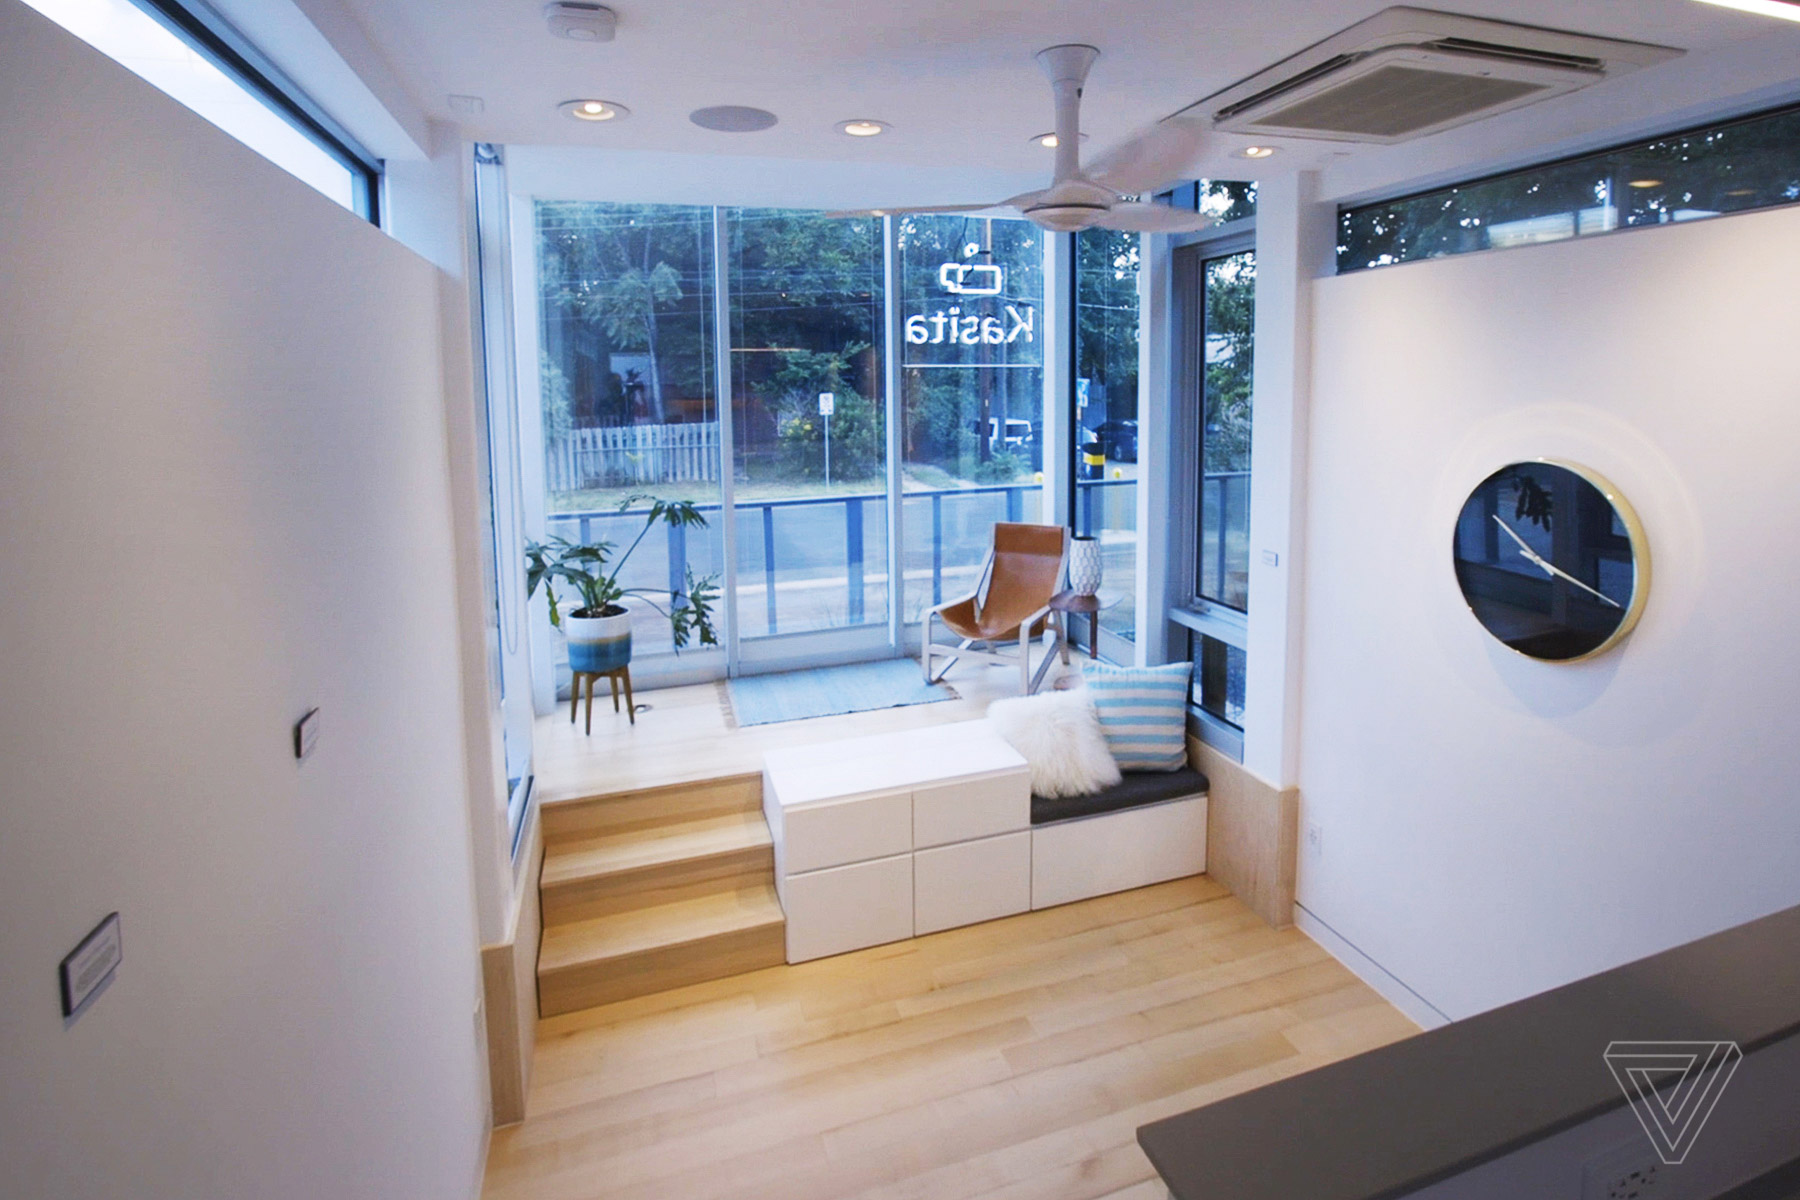 This Tiny Modular Home Is 325 Square Feet Of Iot Heaven The Verge